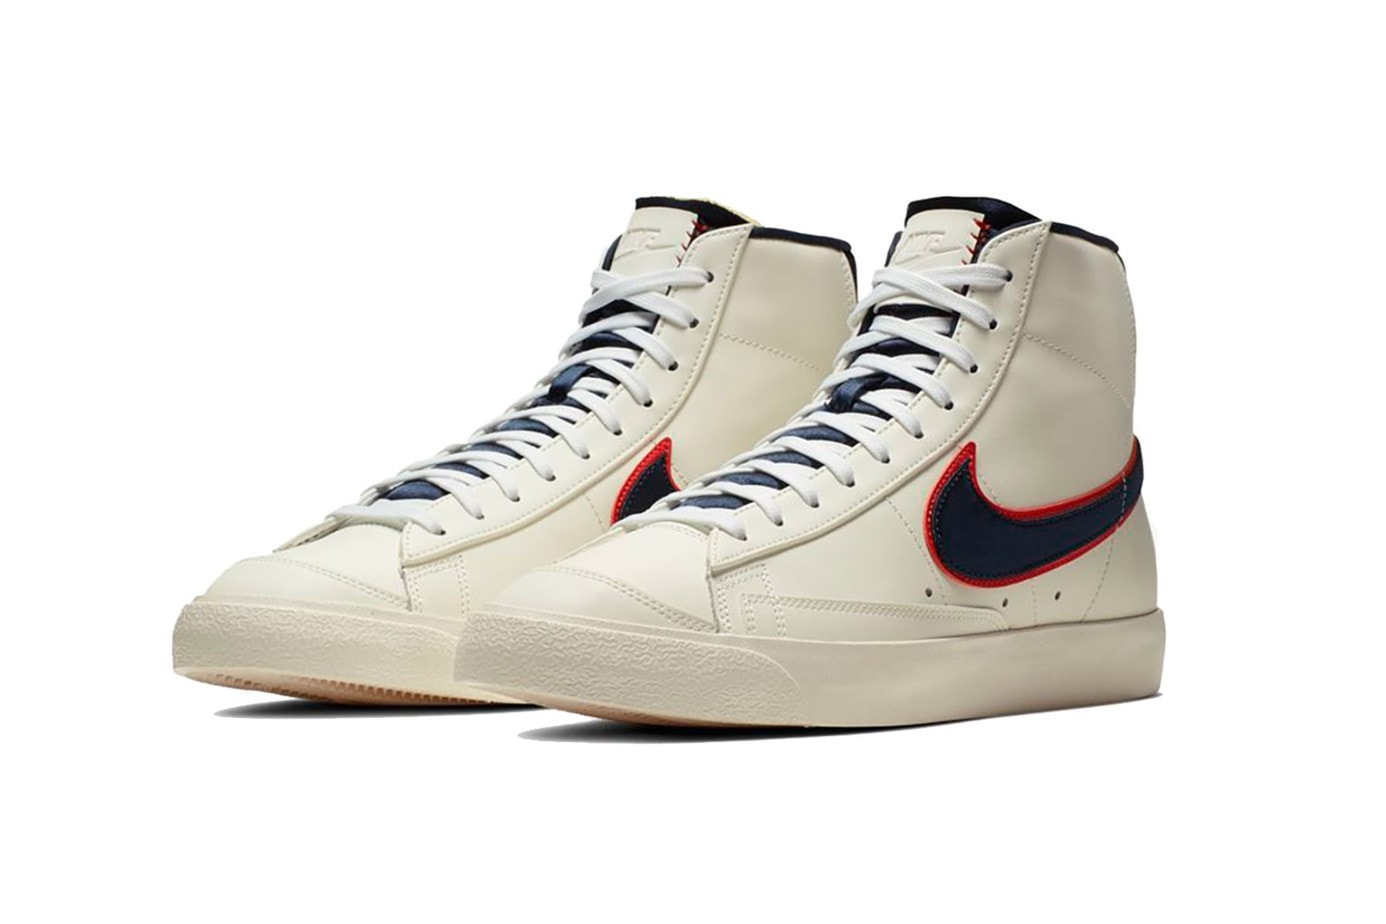 online store 31318 79eb3 Nike s history is intertwined with just about every major sport in the  United States. So, it comes as no surprise when they pay homage to the  legendary ...